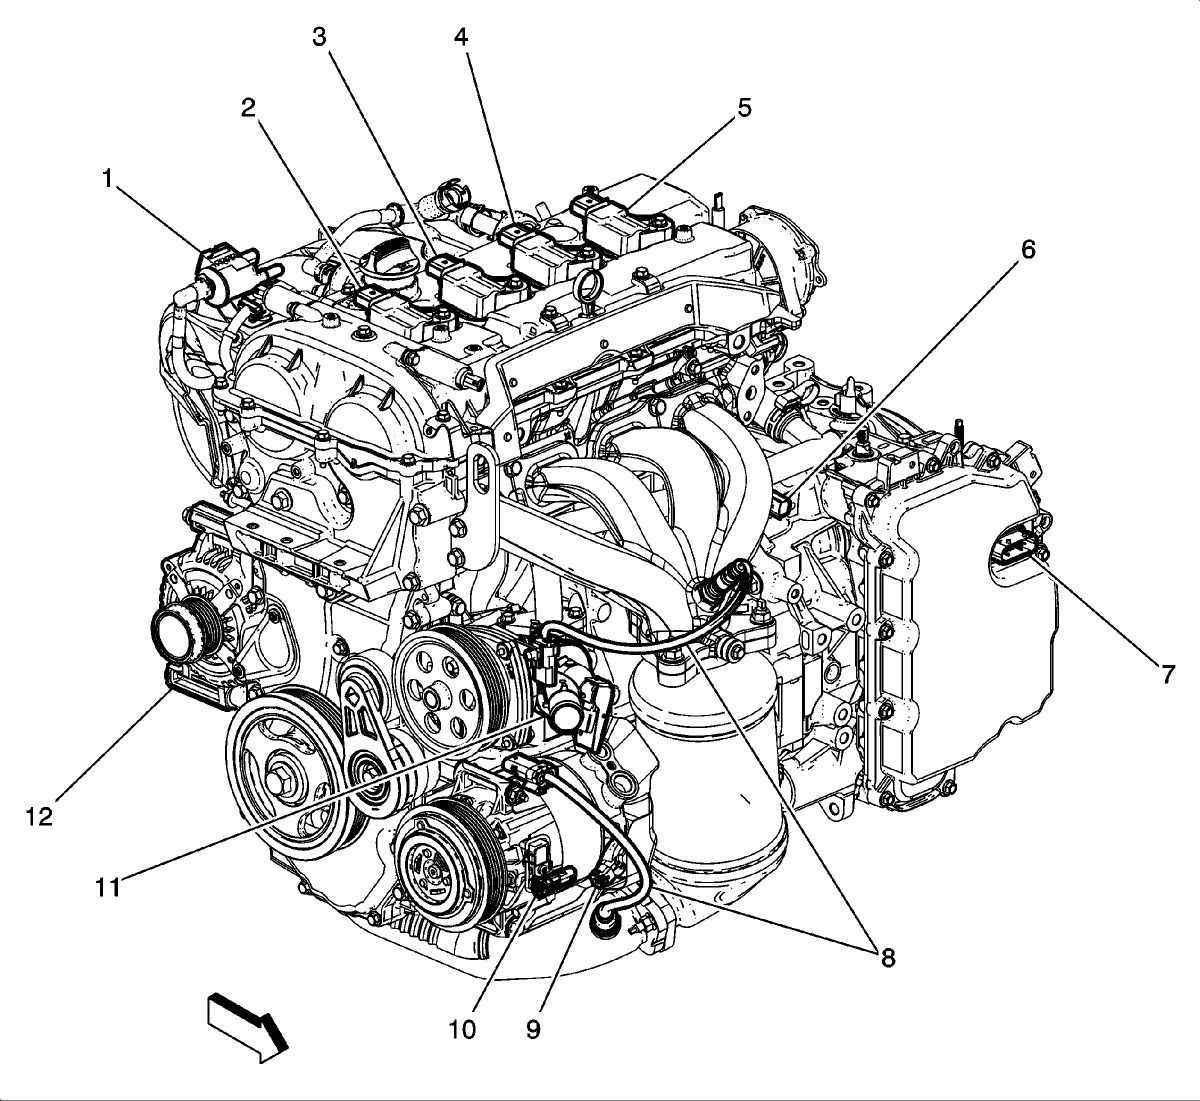 2013 Chevrolet Malibu Engine Diagram